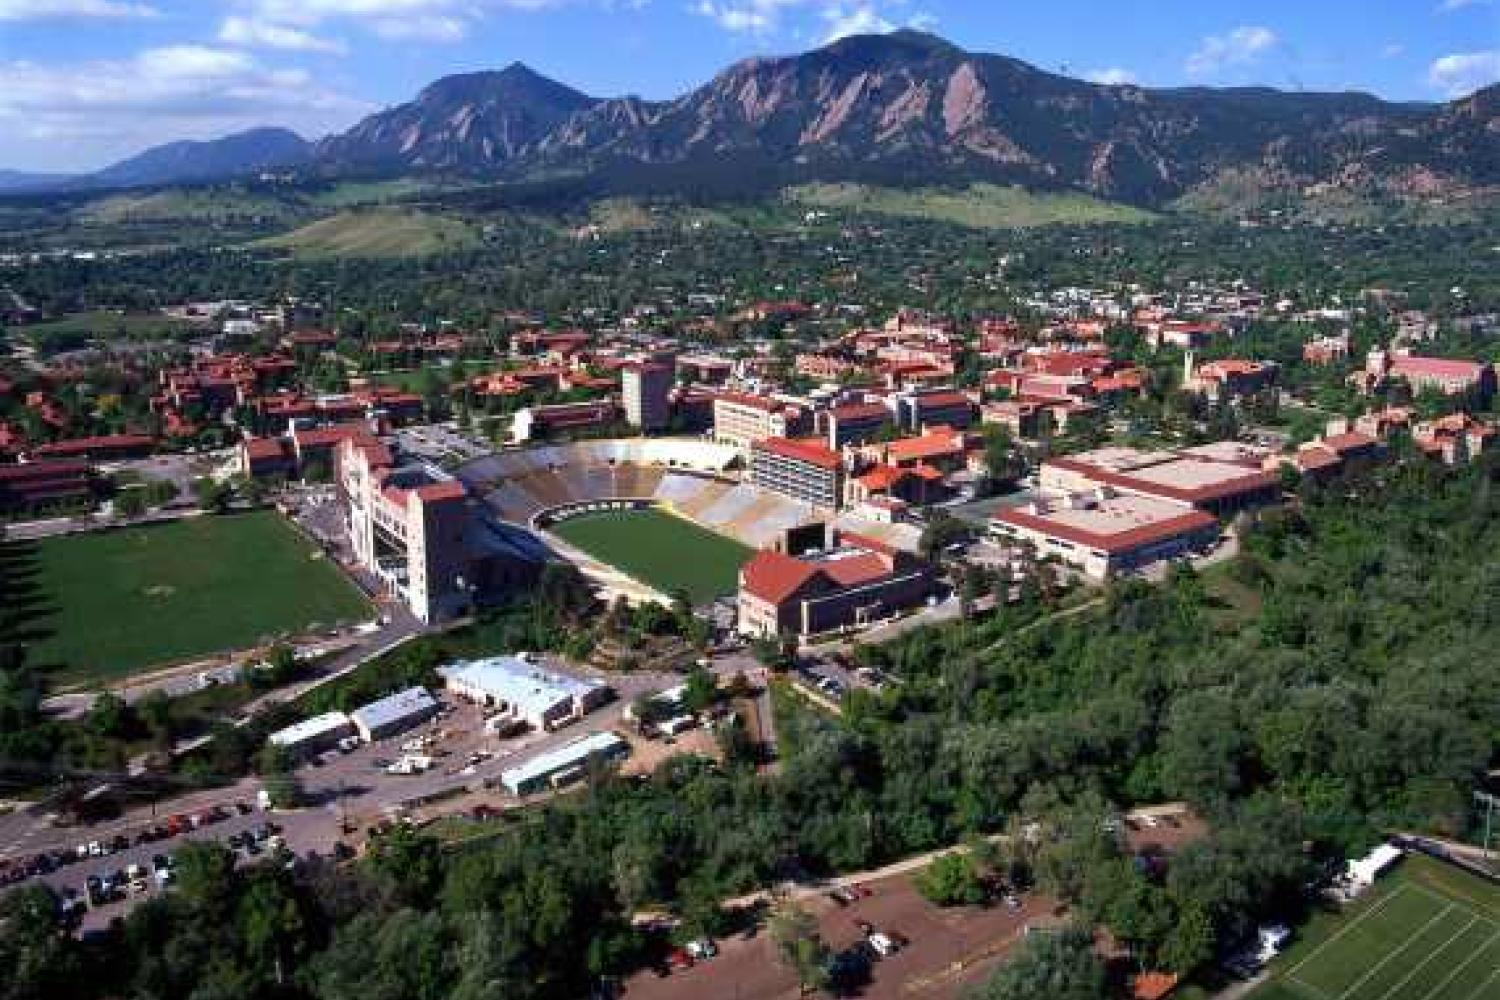 The University of Colorado is consistently voted one of the most beautiful campuses in the nation.